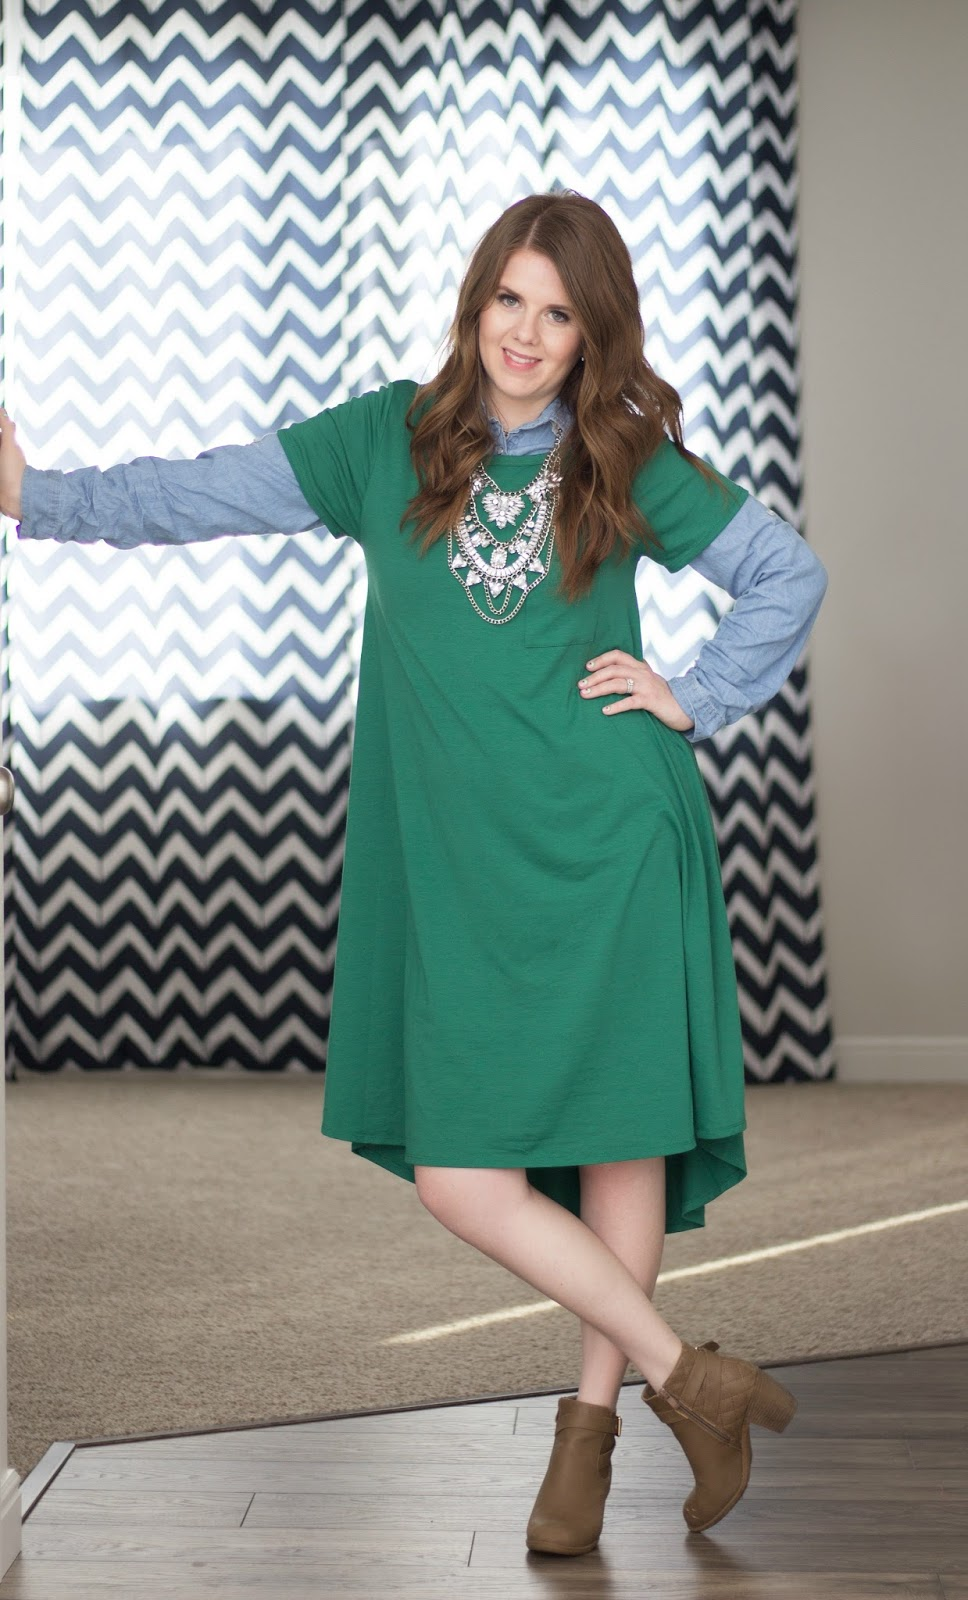 Lularoe Carly Outfit Idea: Layered for Winter